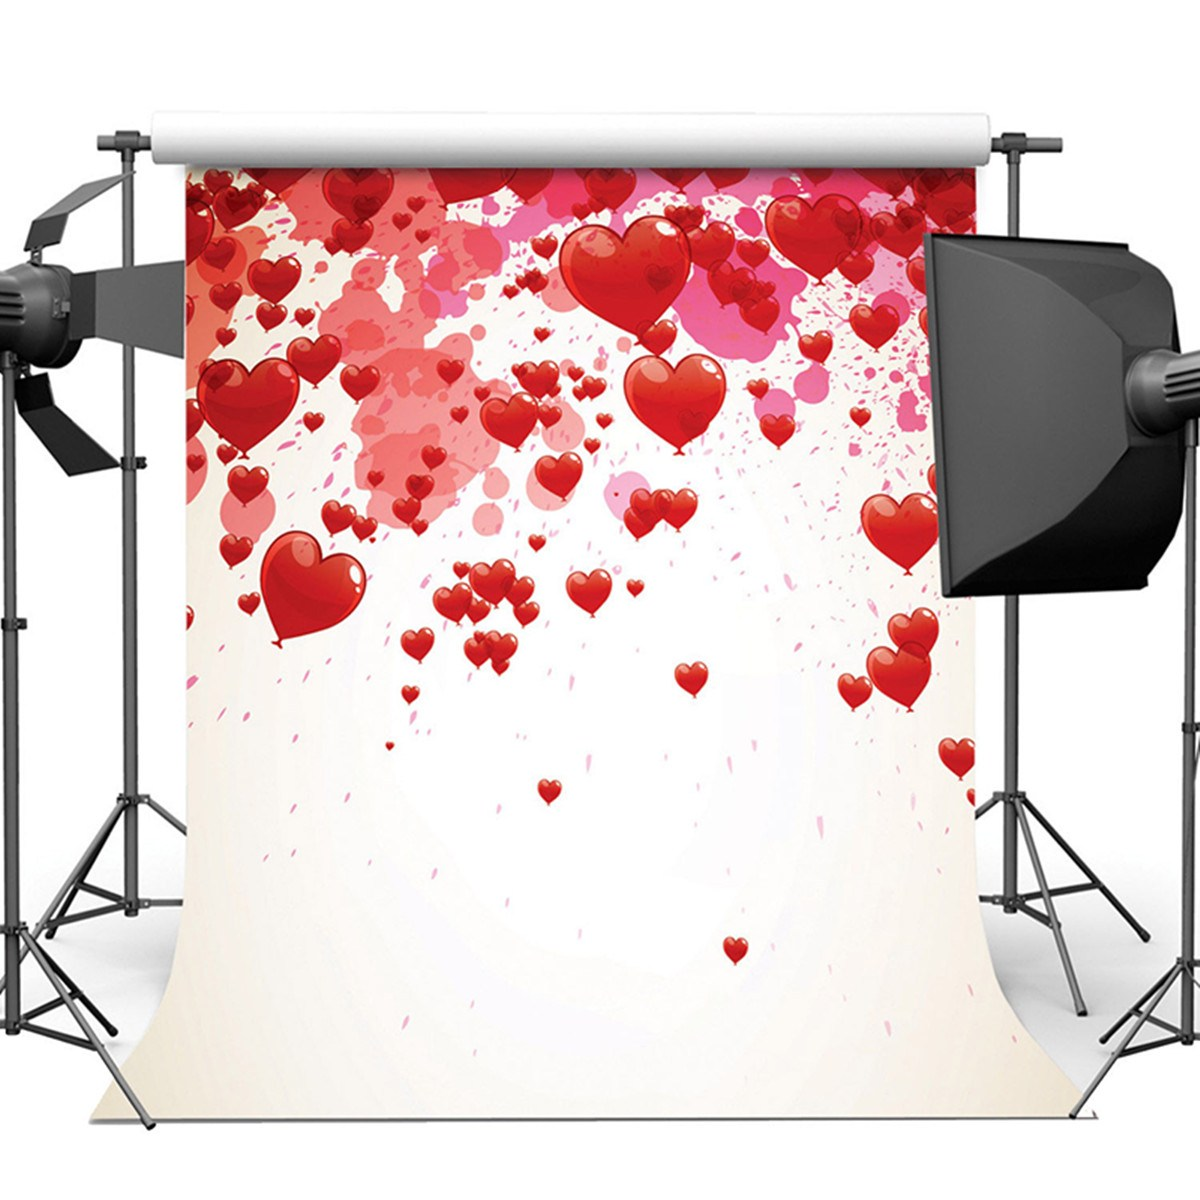 8X8FT Vinyl Love Heart Photography Background Studio Backdrop Wedding Photo Prop 2018 New Arrival